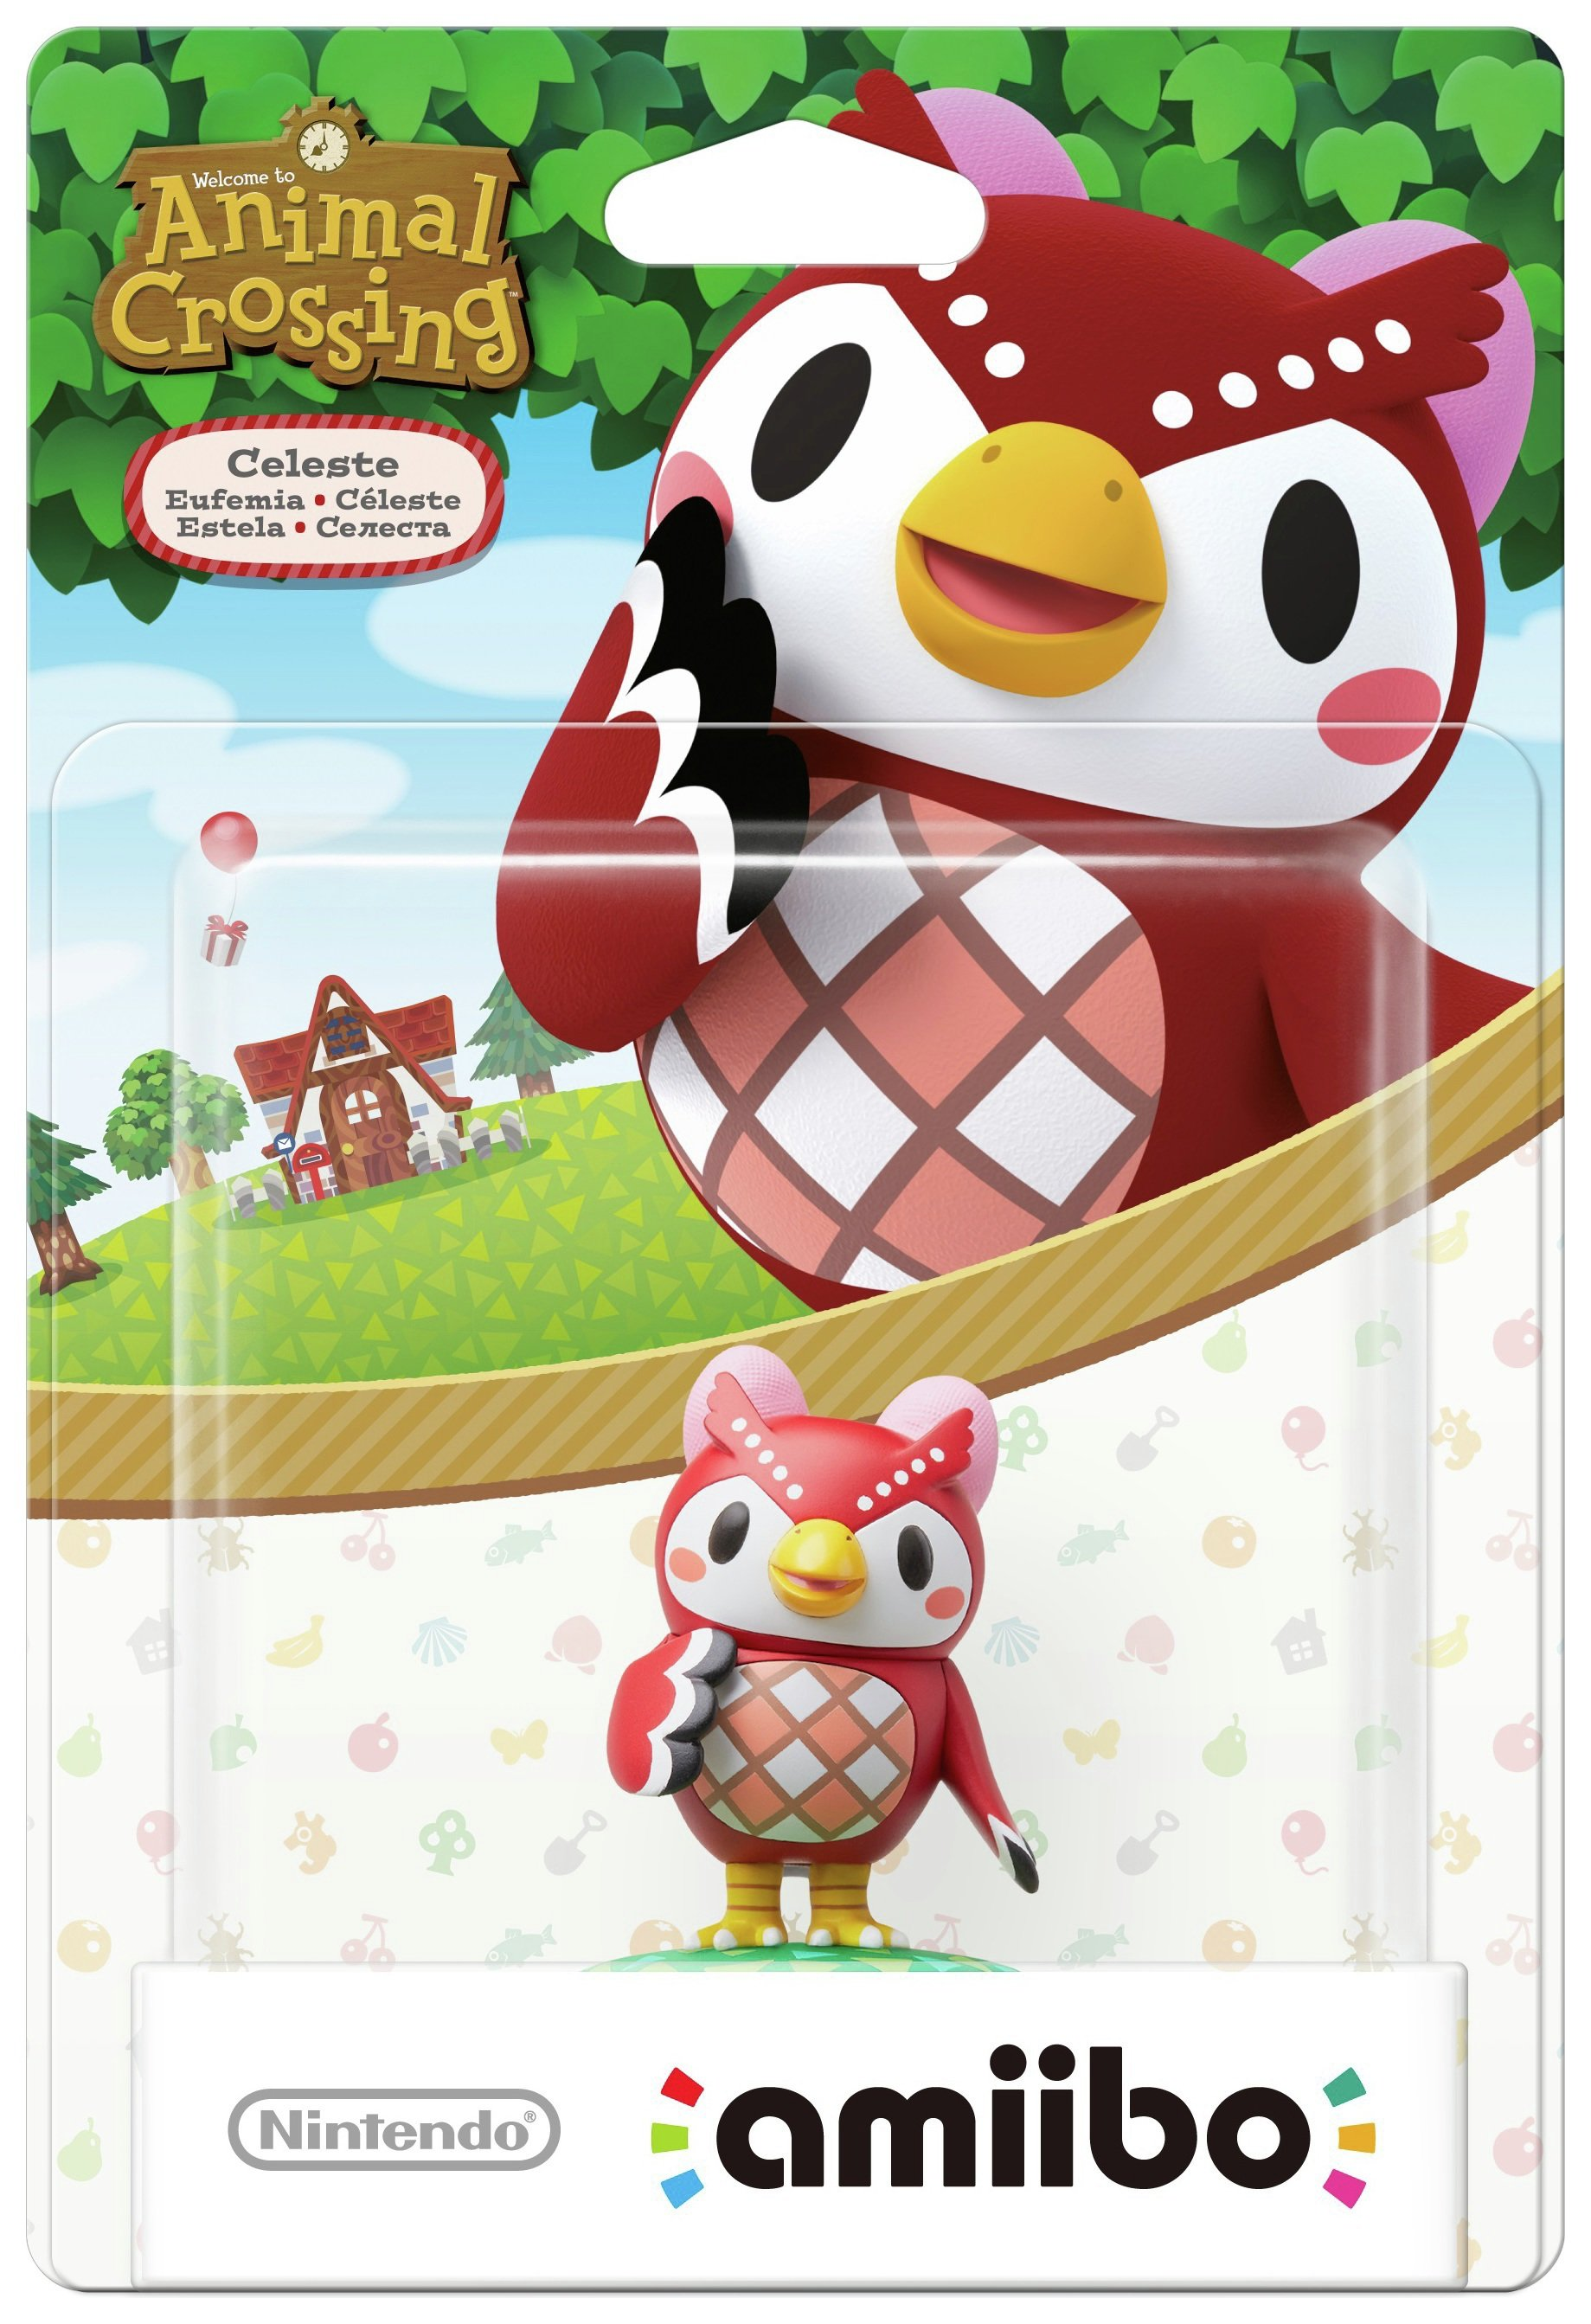 Image of amiibo Animal Crossing - Celeste.